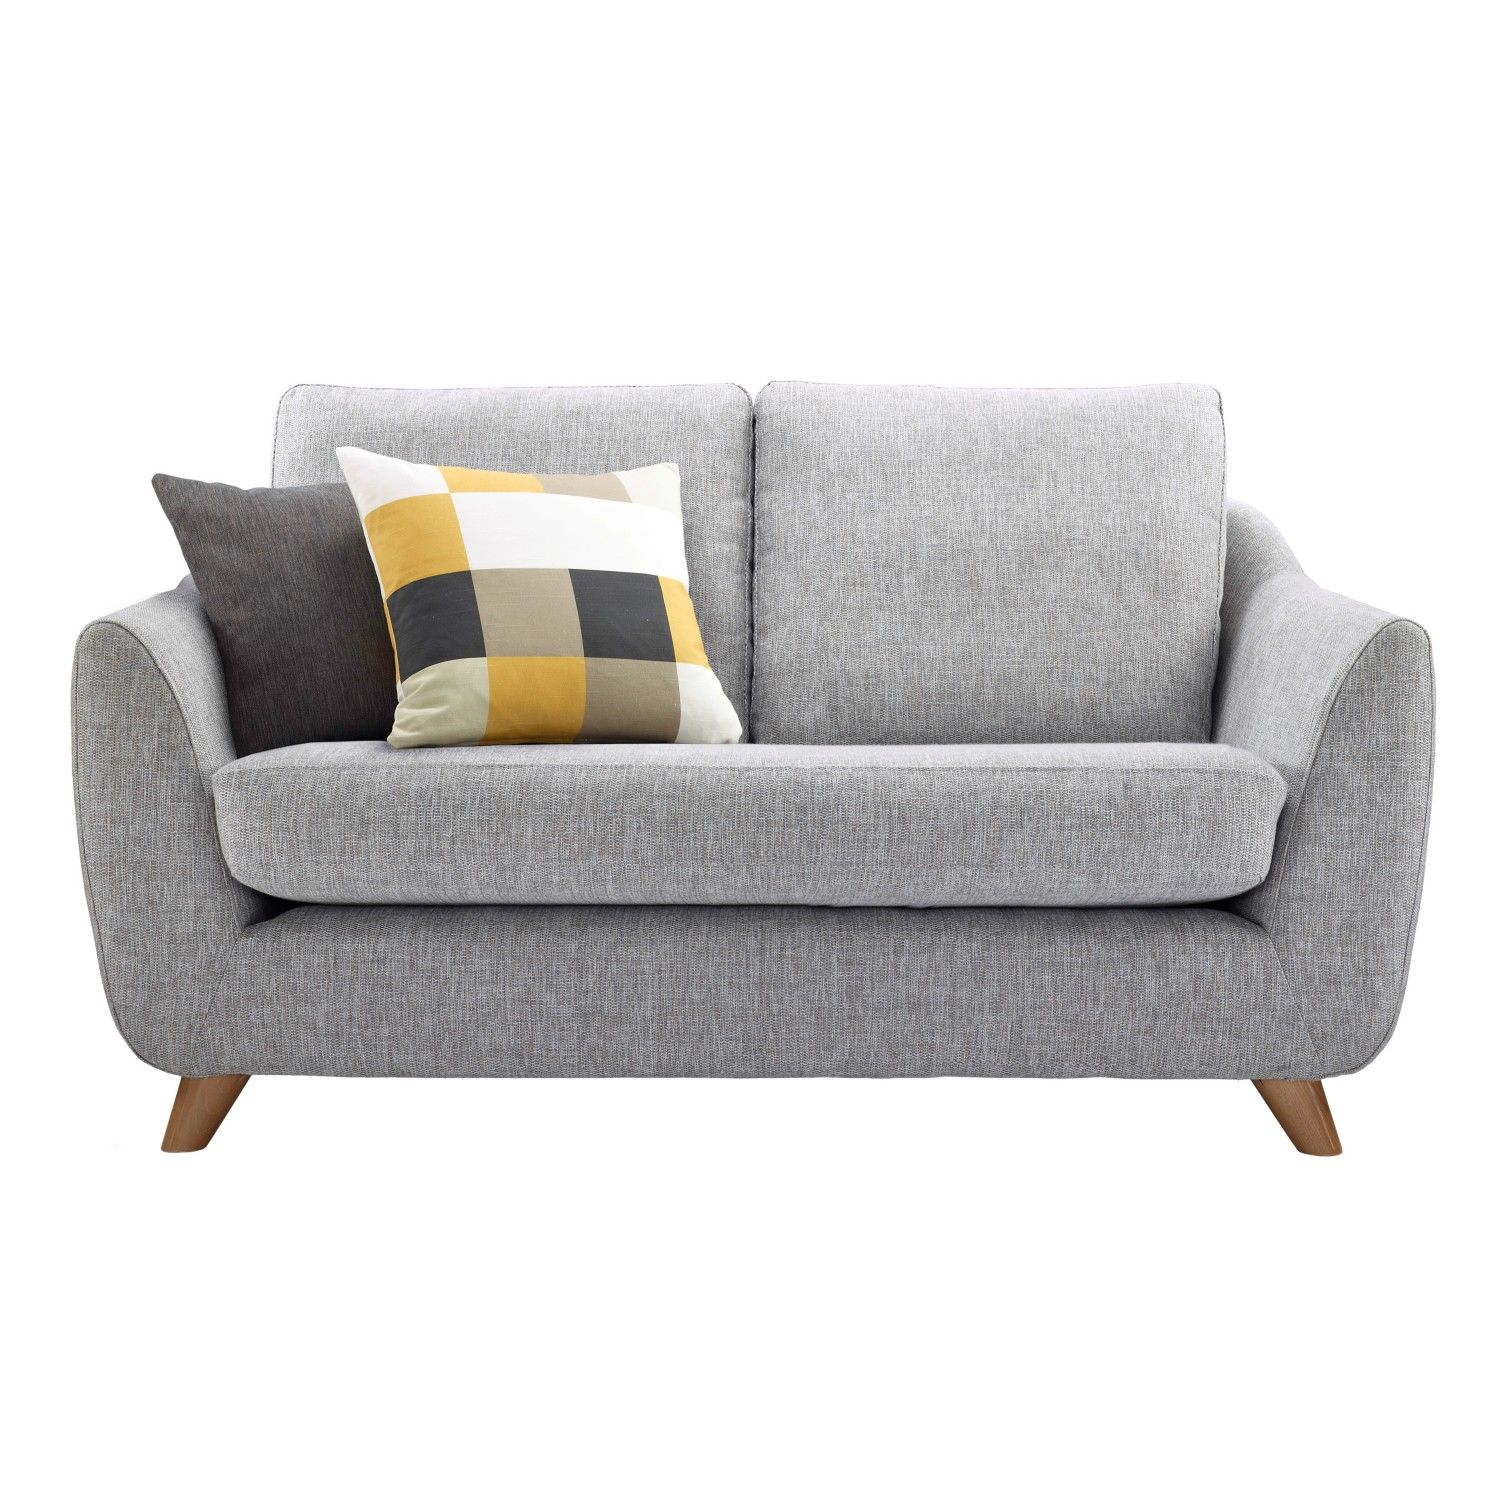 Loveseats For Small Es Sofa Decoration Fascinating Grey Legged